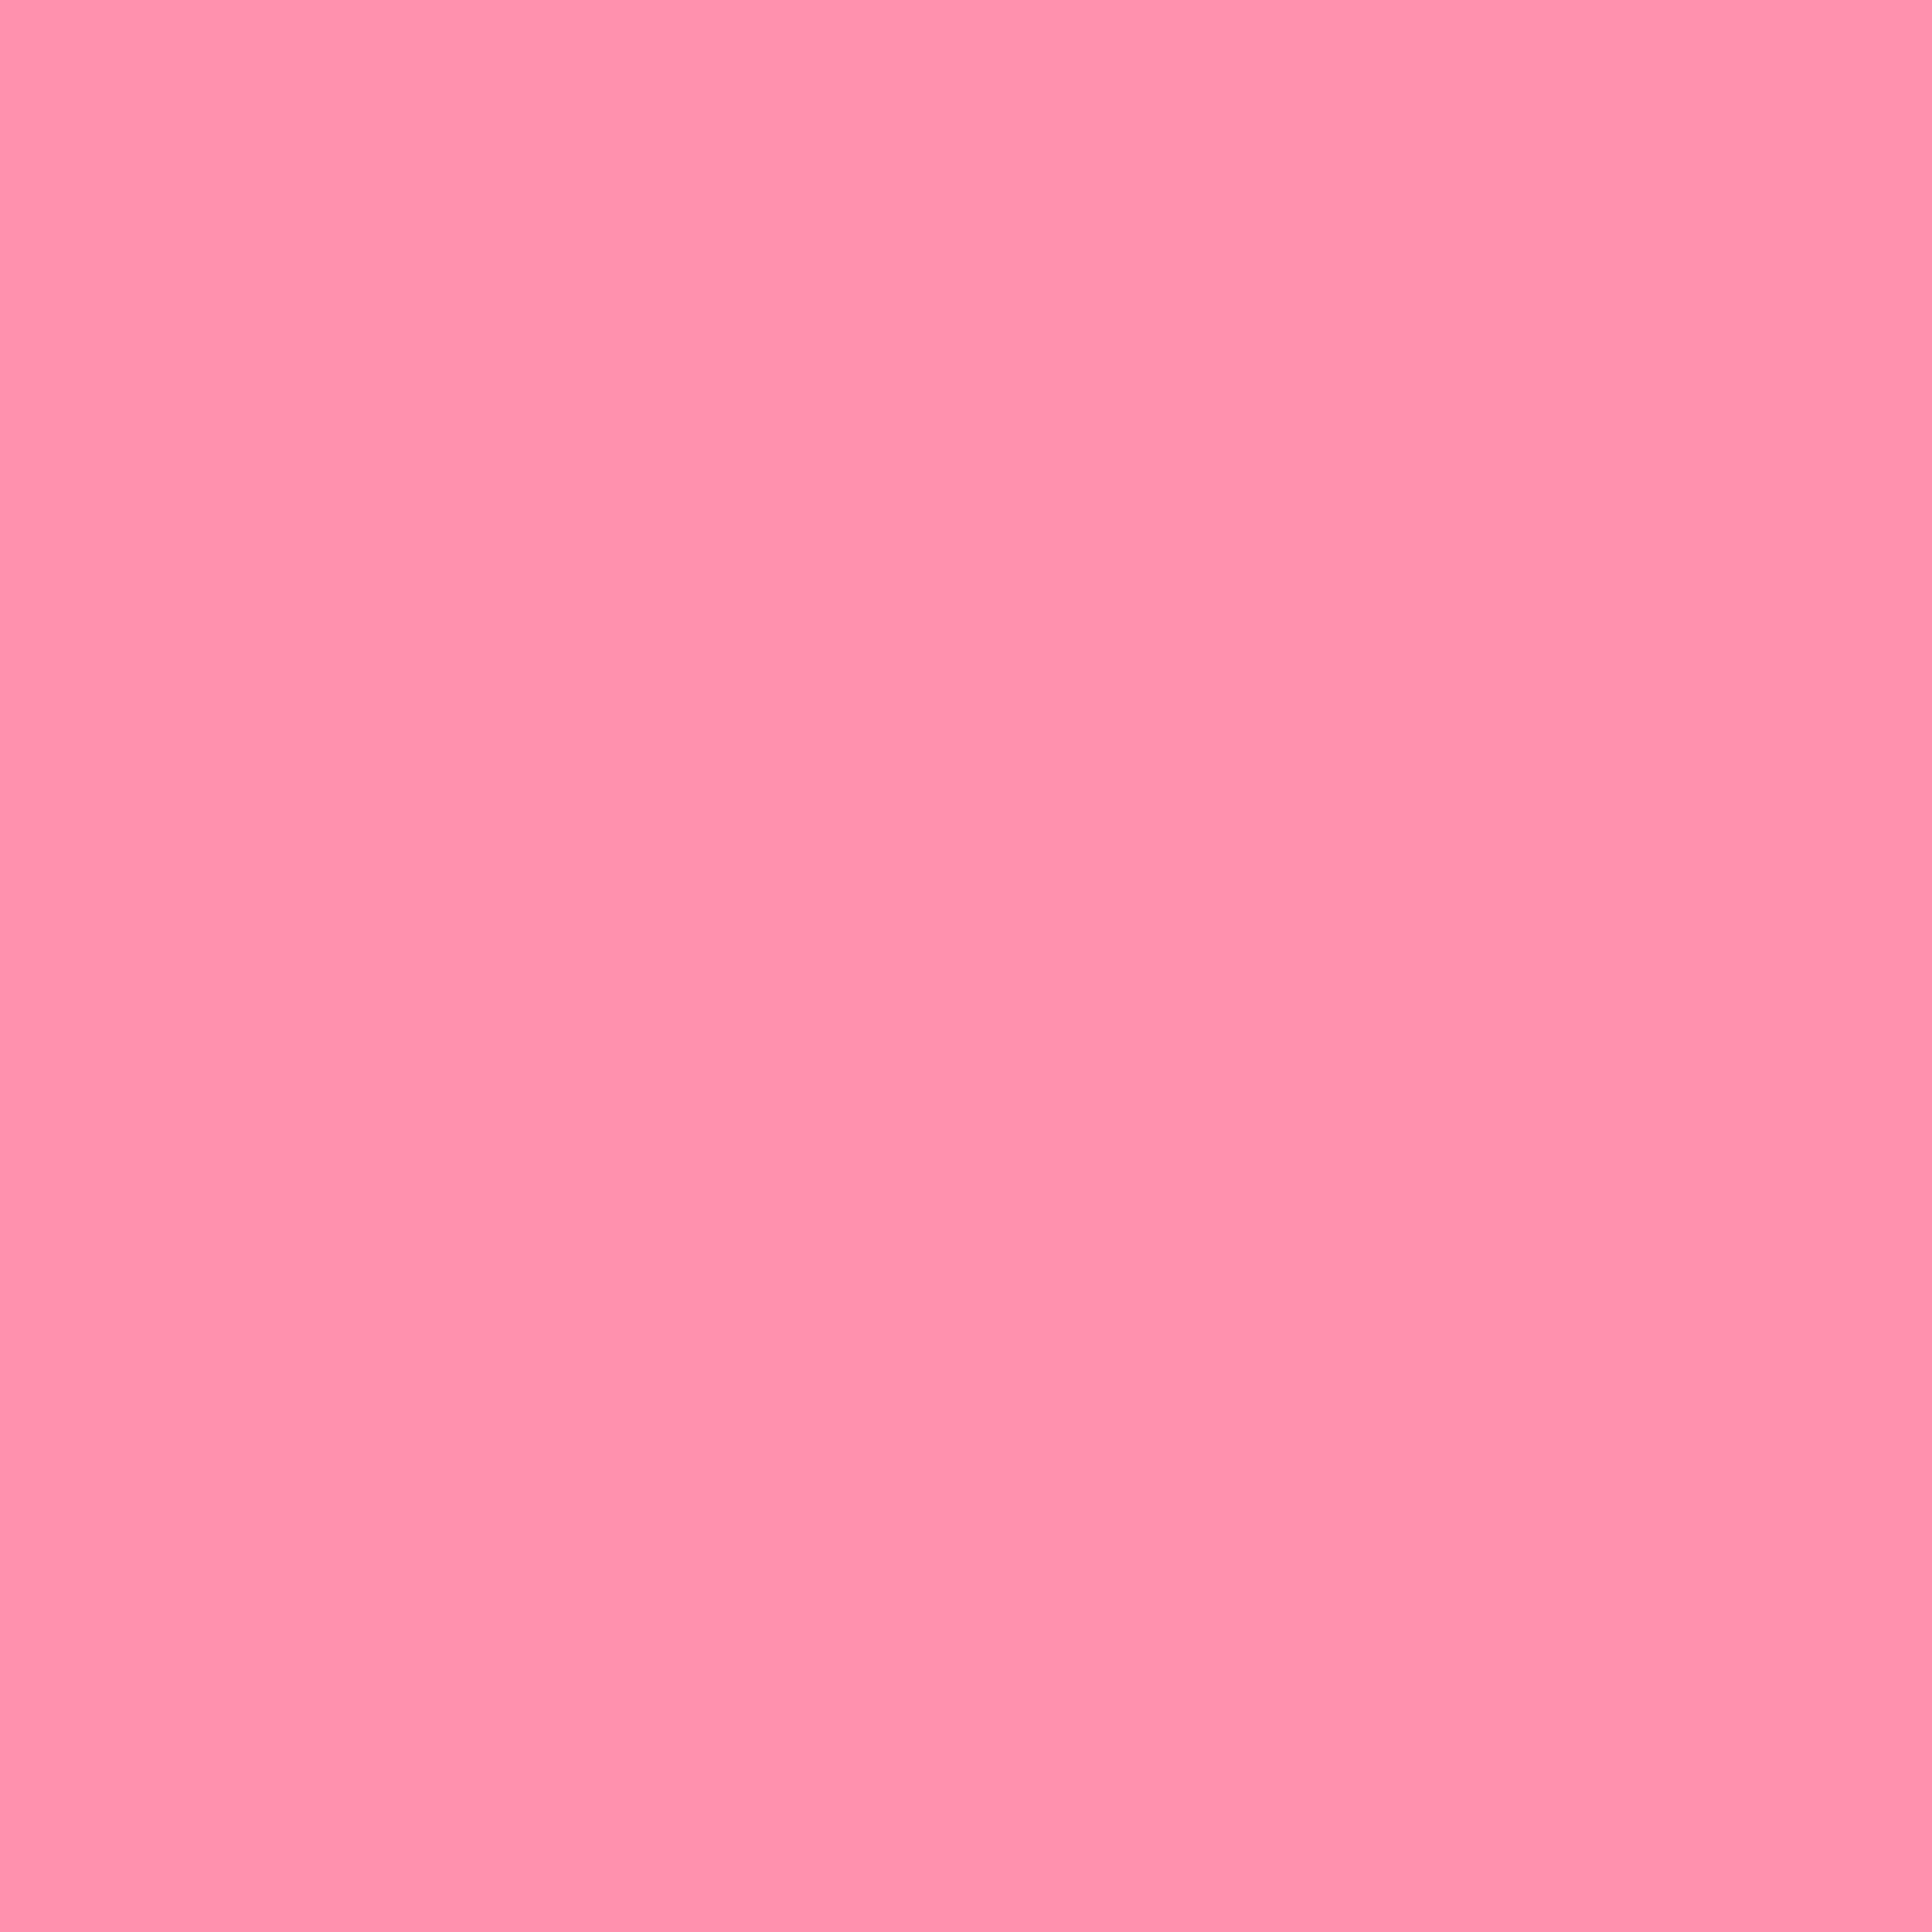 2048x2048 Schauss Pink Solid Color Background